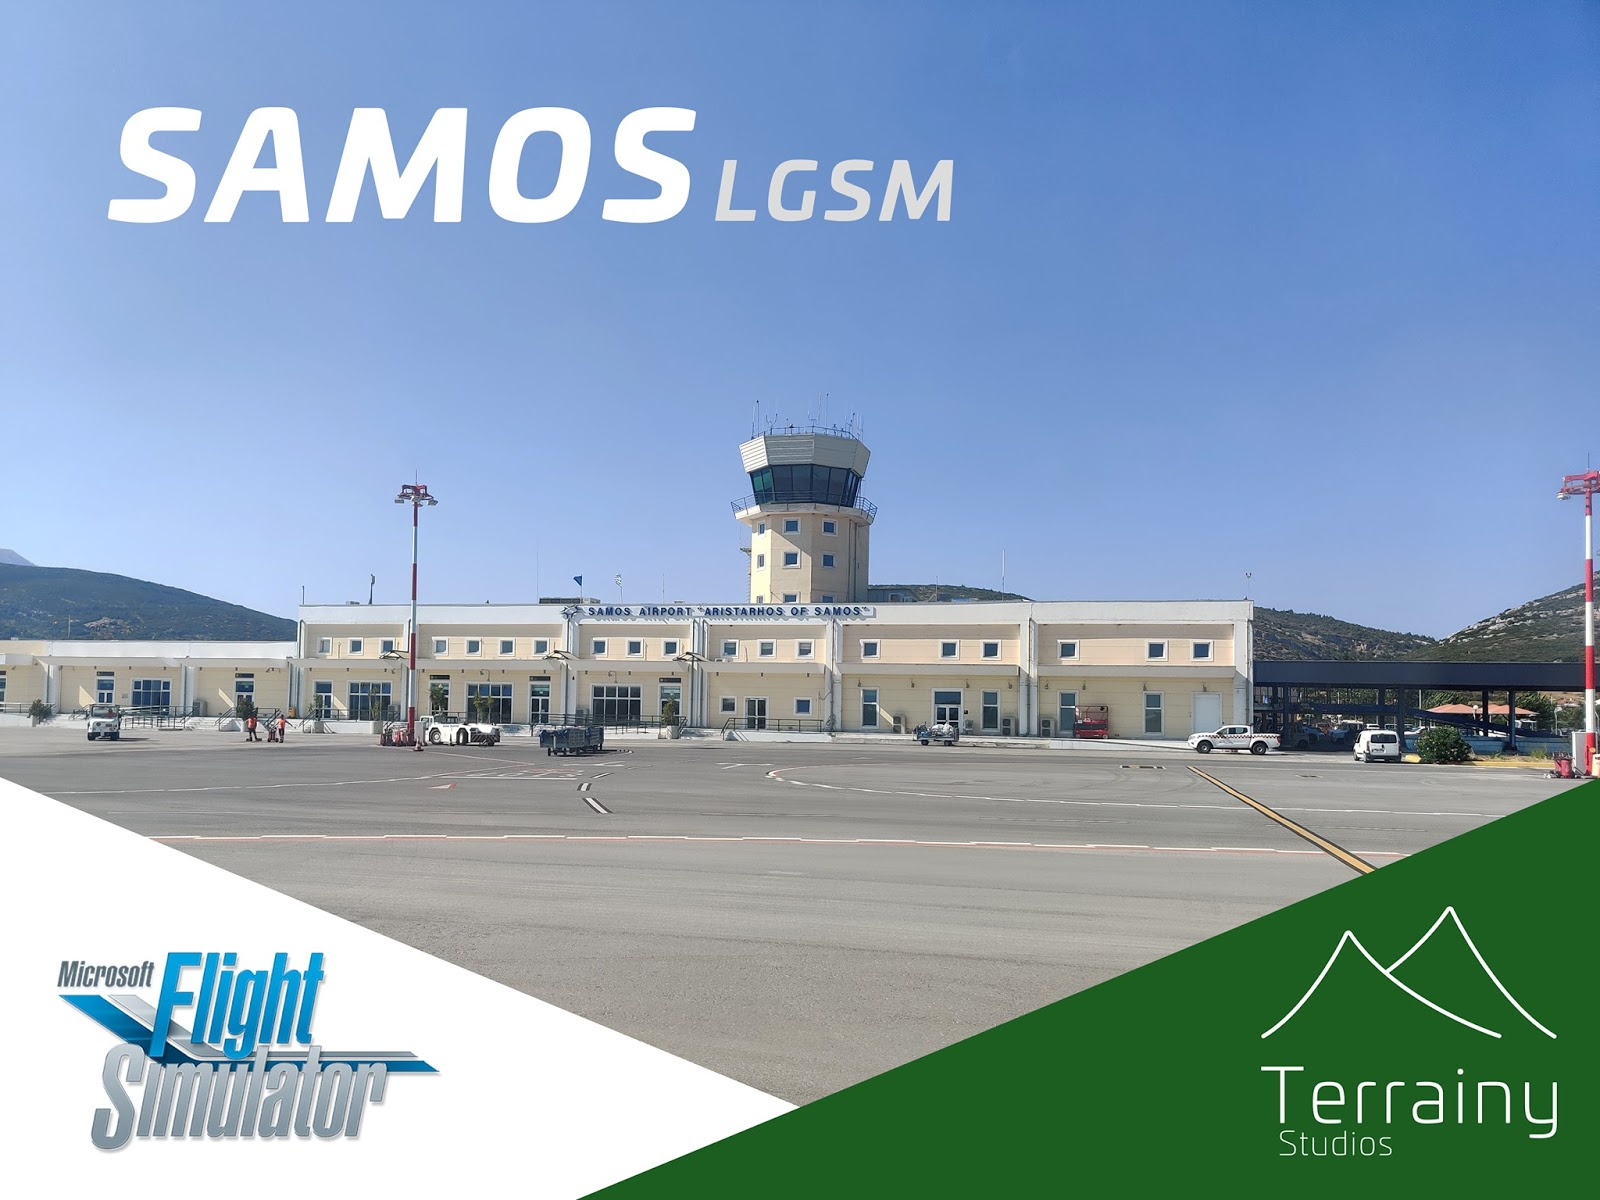 """Image may contain: sky and outdoor, text that says """"SAMOSL LGSM Microsoft Flight Simulator Terrainy Studios"""""""